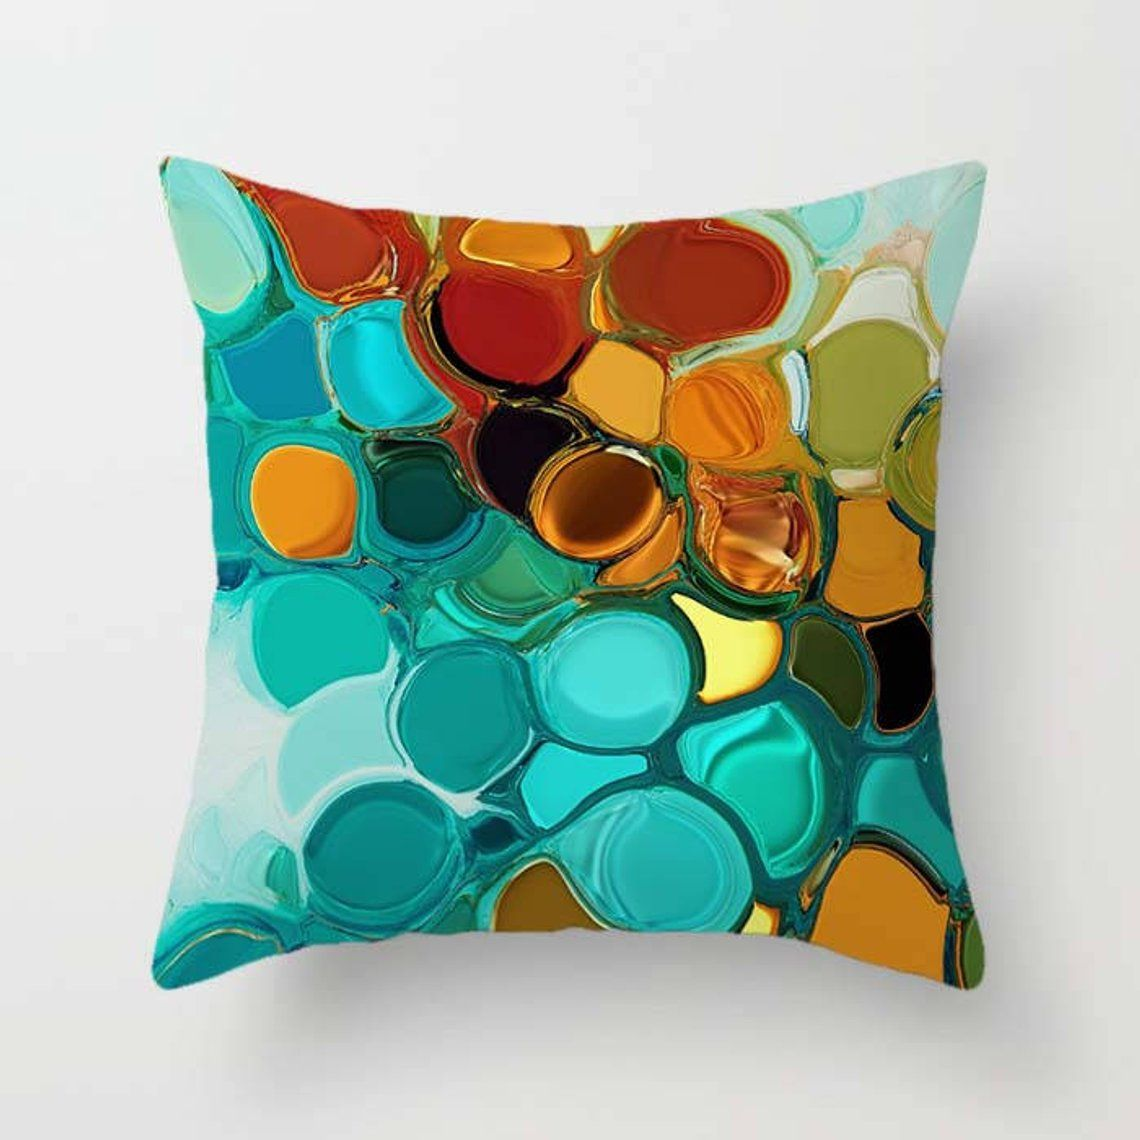 Teal Orange Throw Pillow Covers Decorative Pillow Case Cushion Covers Abstract Pillow Colorful Mix Match Blue Turquoise Green Pillow Sham Teal Throw Pillows Orange Throw Pillows Throw Pillows